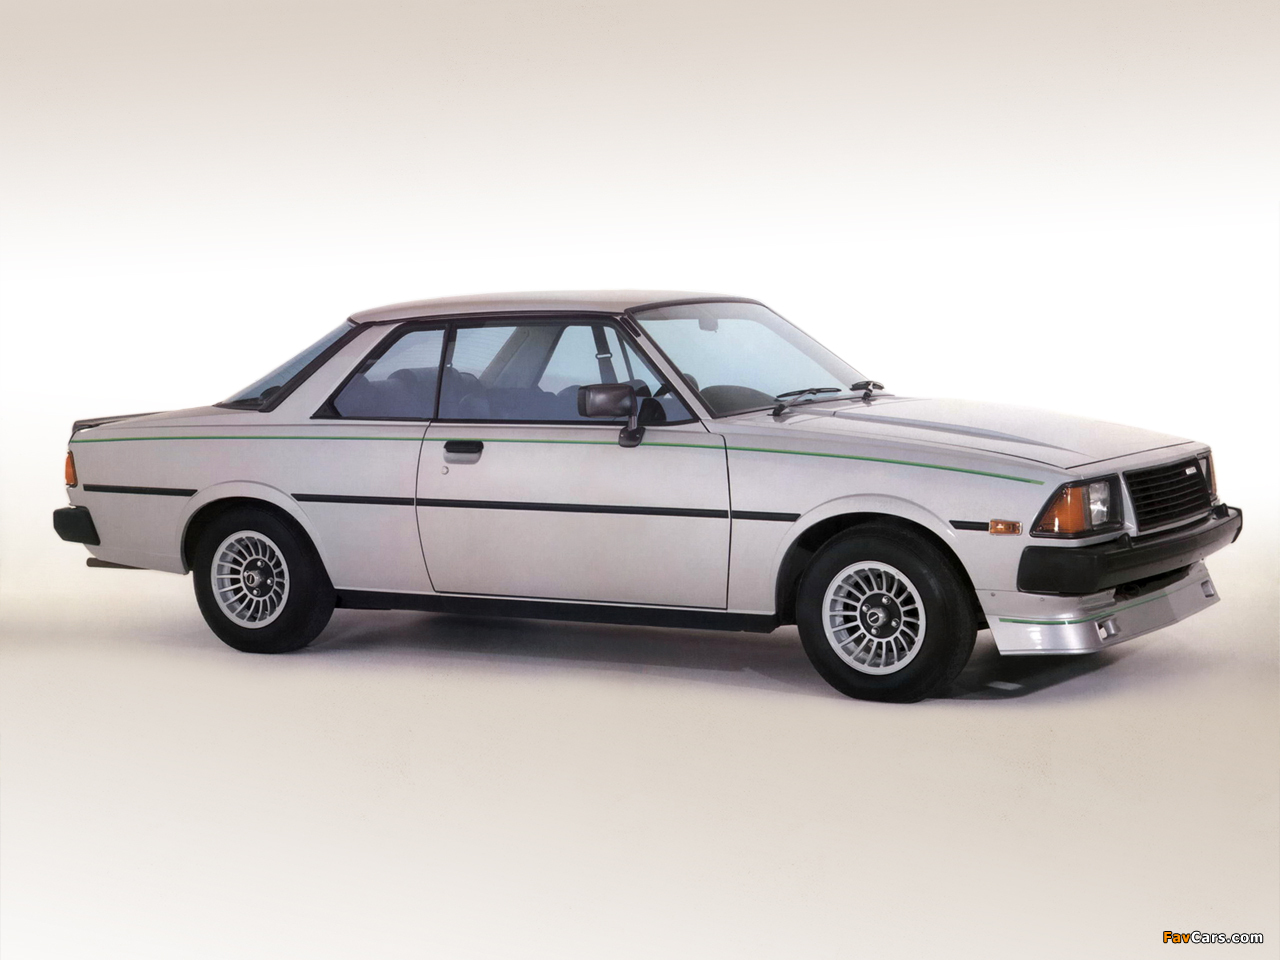 1024x768 Car Wallpapers Pictures Of Twr Mazda 626 Montrose 1979 81 1280x960